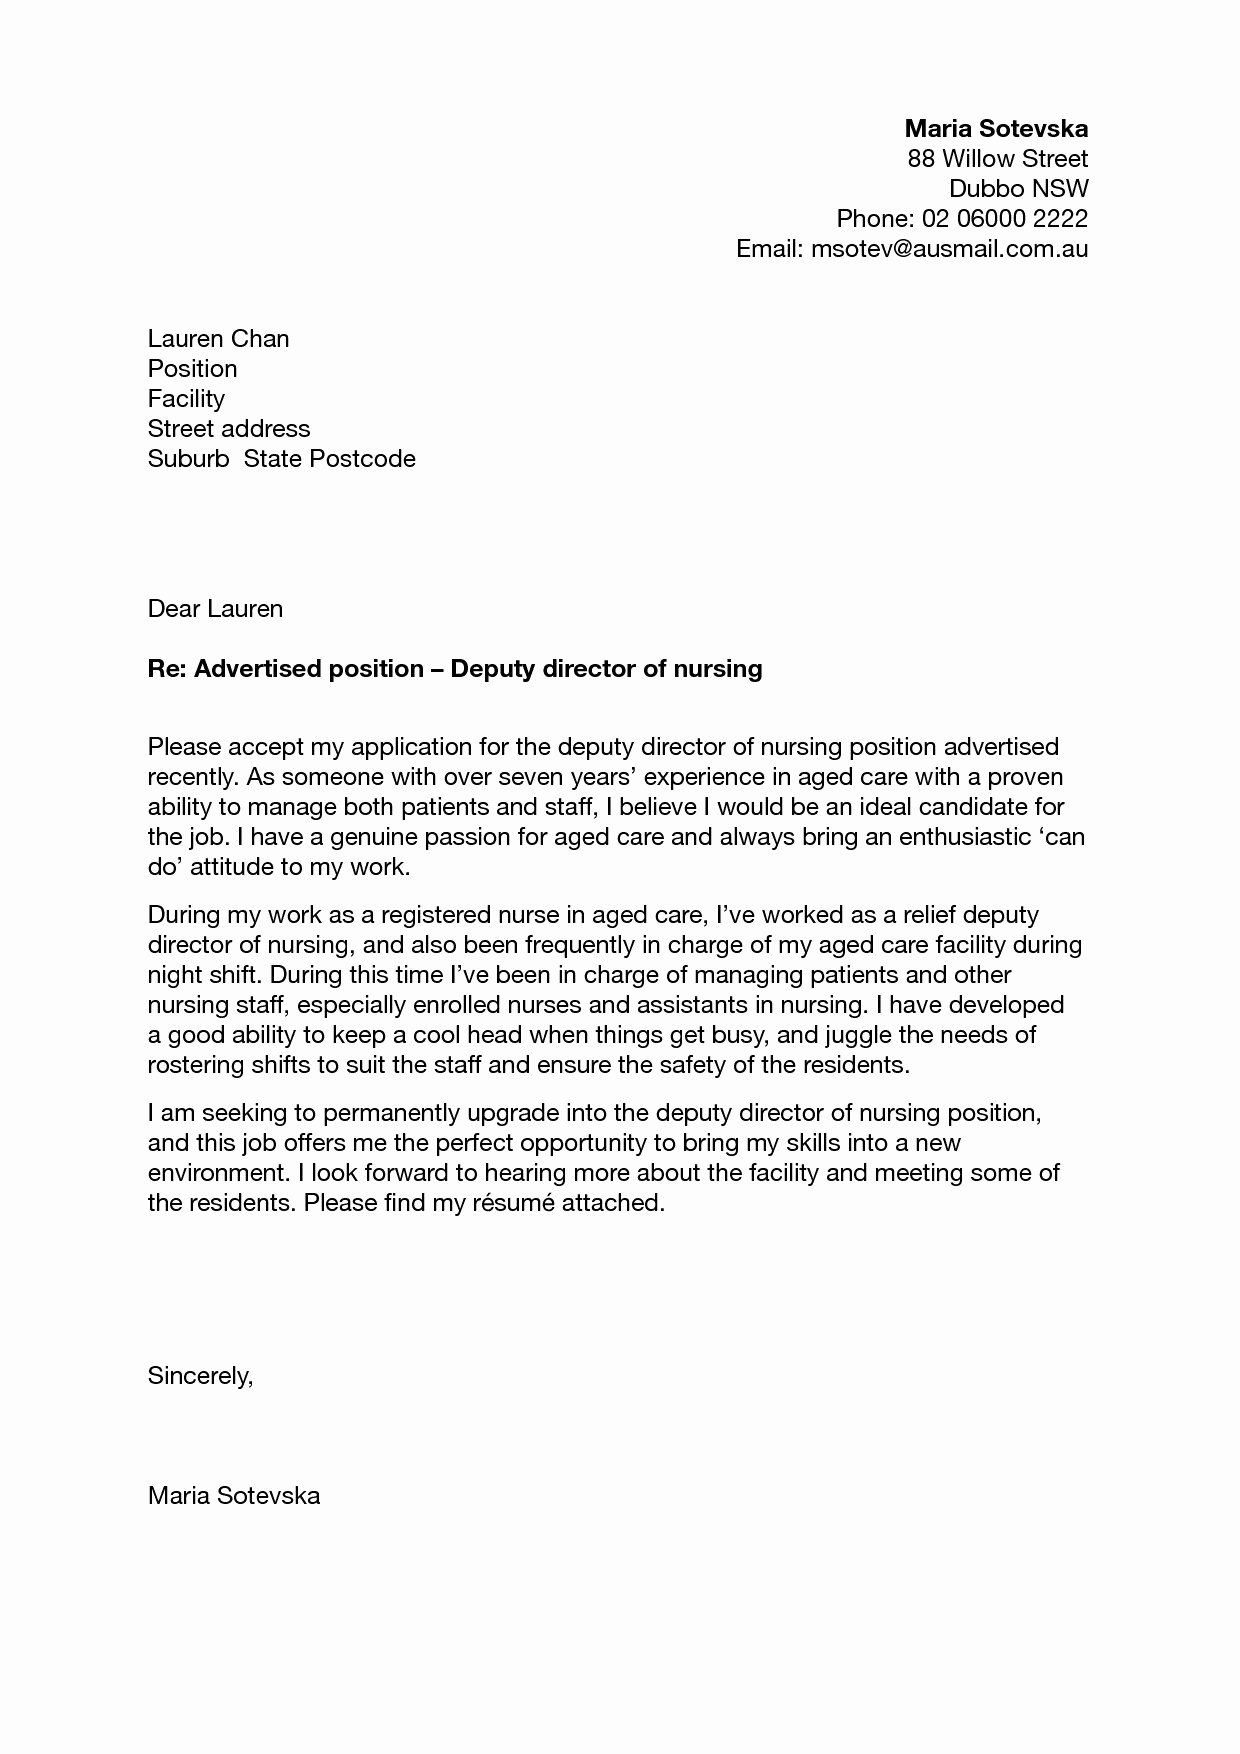 Voluntary Demotion Letter Template Best Of Demotion Letter Template Collection